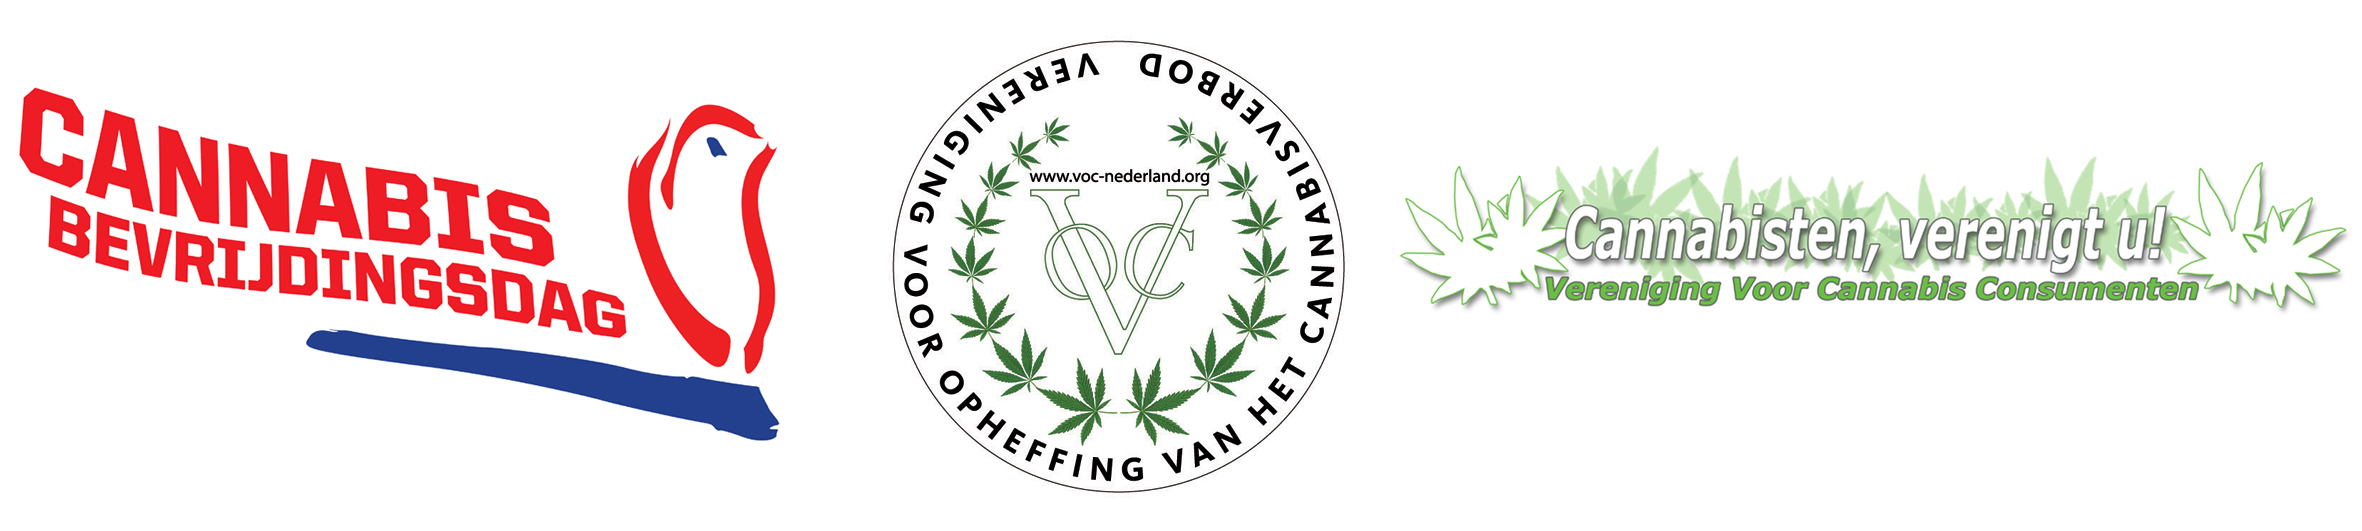 Briefhoofd_CBD_VOC_VVCC_copy